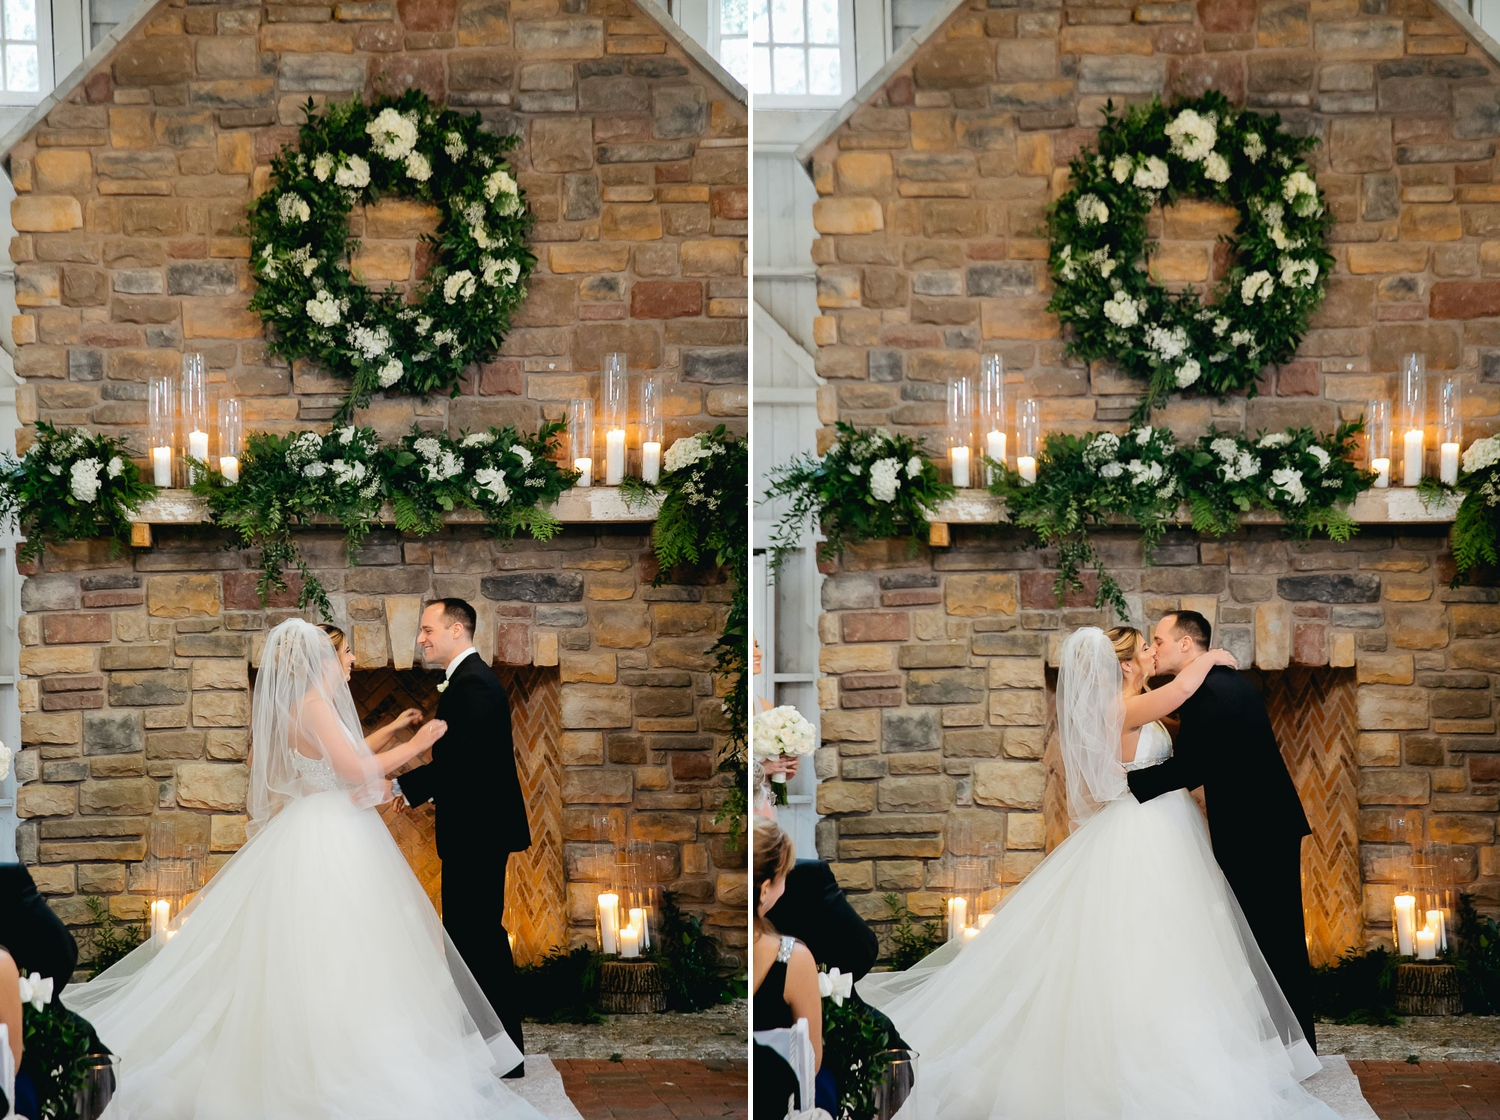 bride and groom at ceremony with greenery